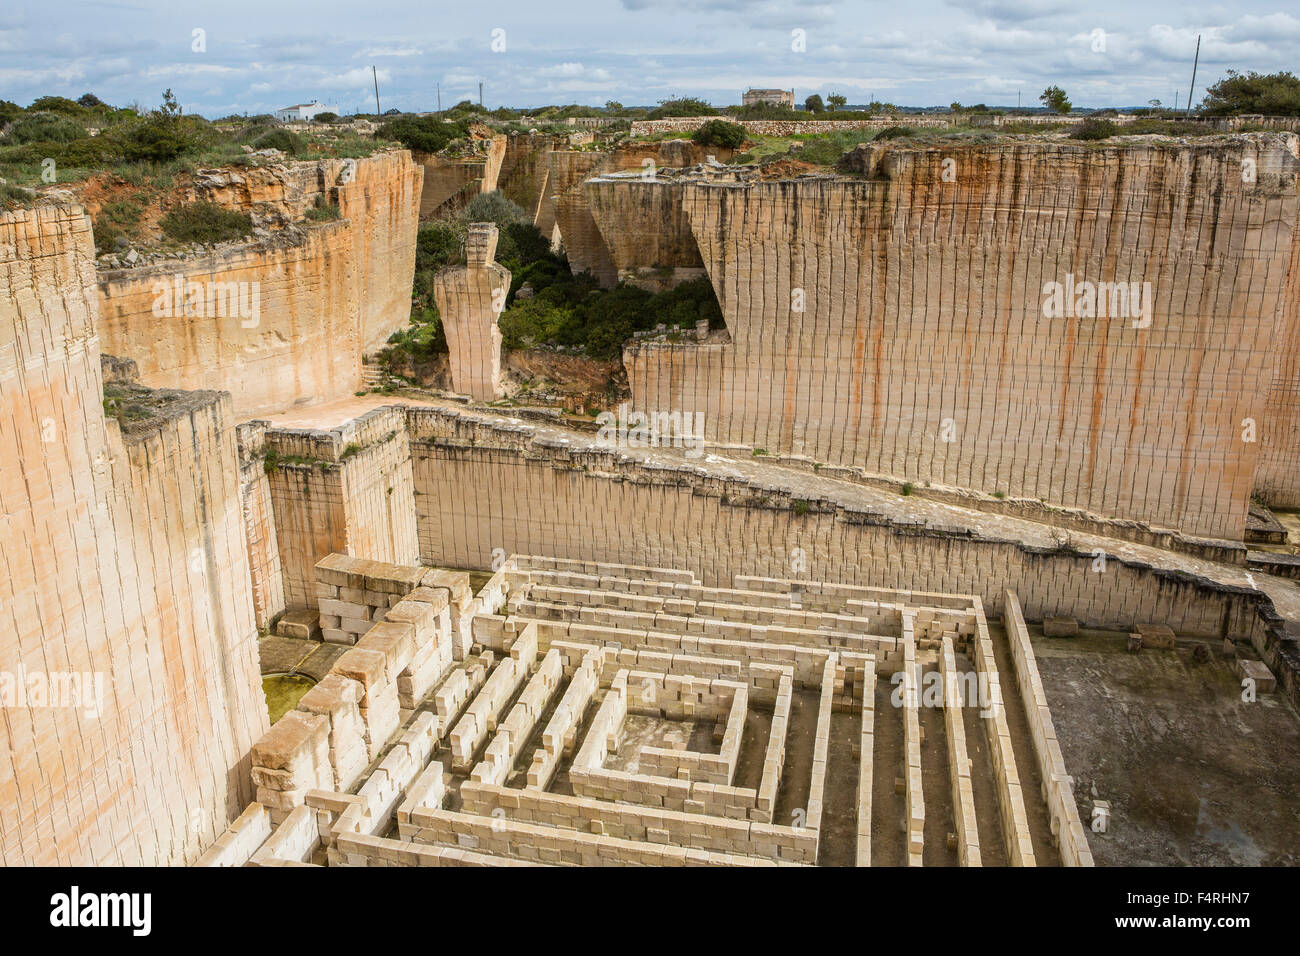 Ciutadella, town, Lithica, Menorca, Island, Spain, Europe, S'Hostal, architecture, Balearic, big, deep, quarry, - Stock Image